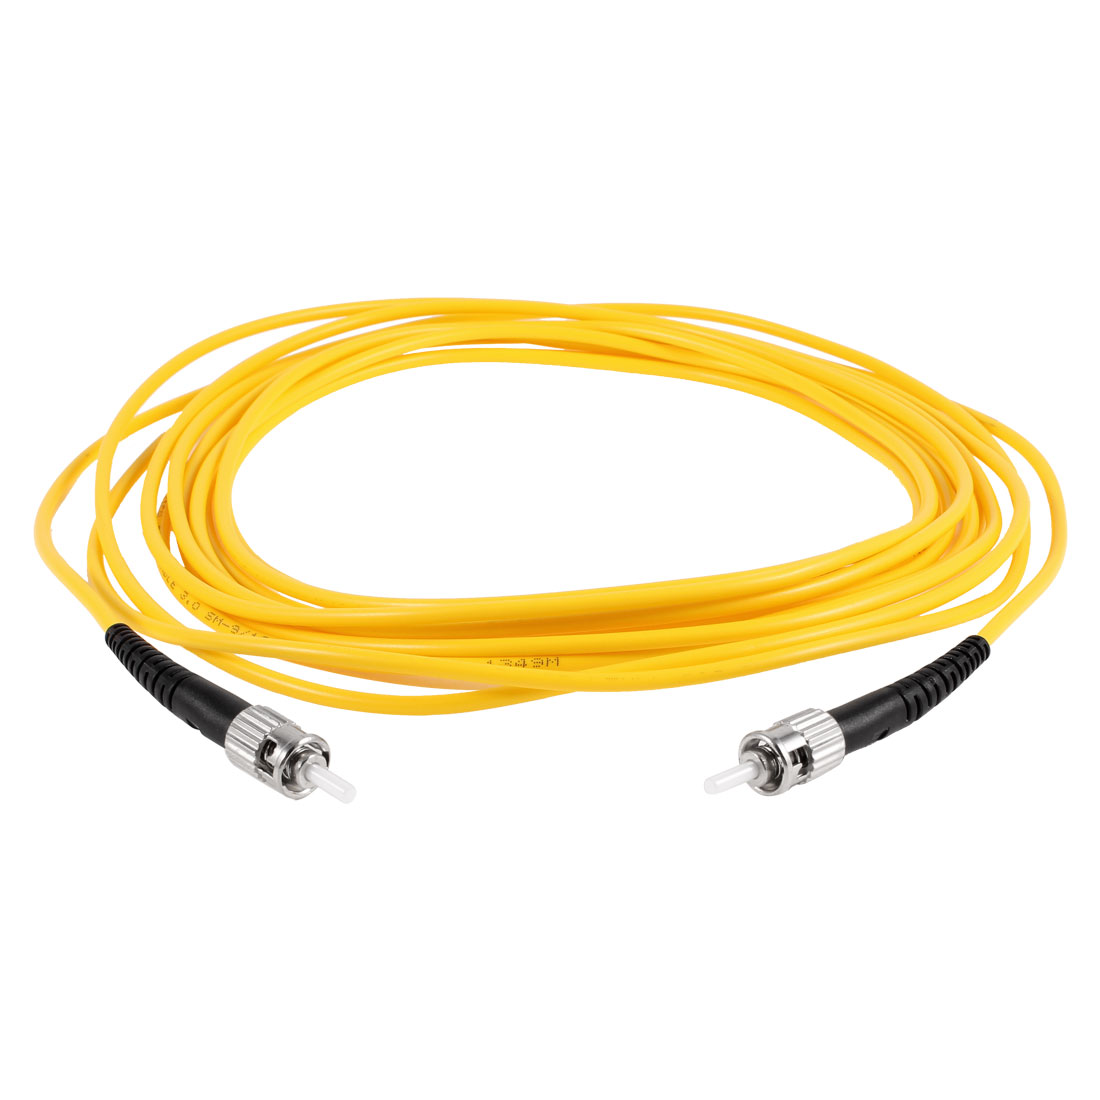 Yellow ST to ST Fiber Patch Cable Cord Jumper SX SM 9/125 3.0 5 Meters